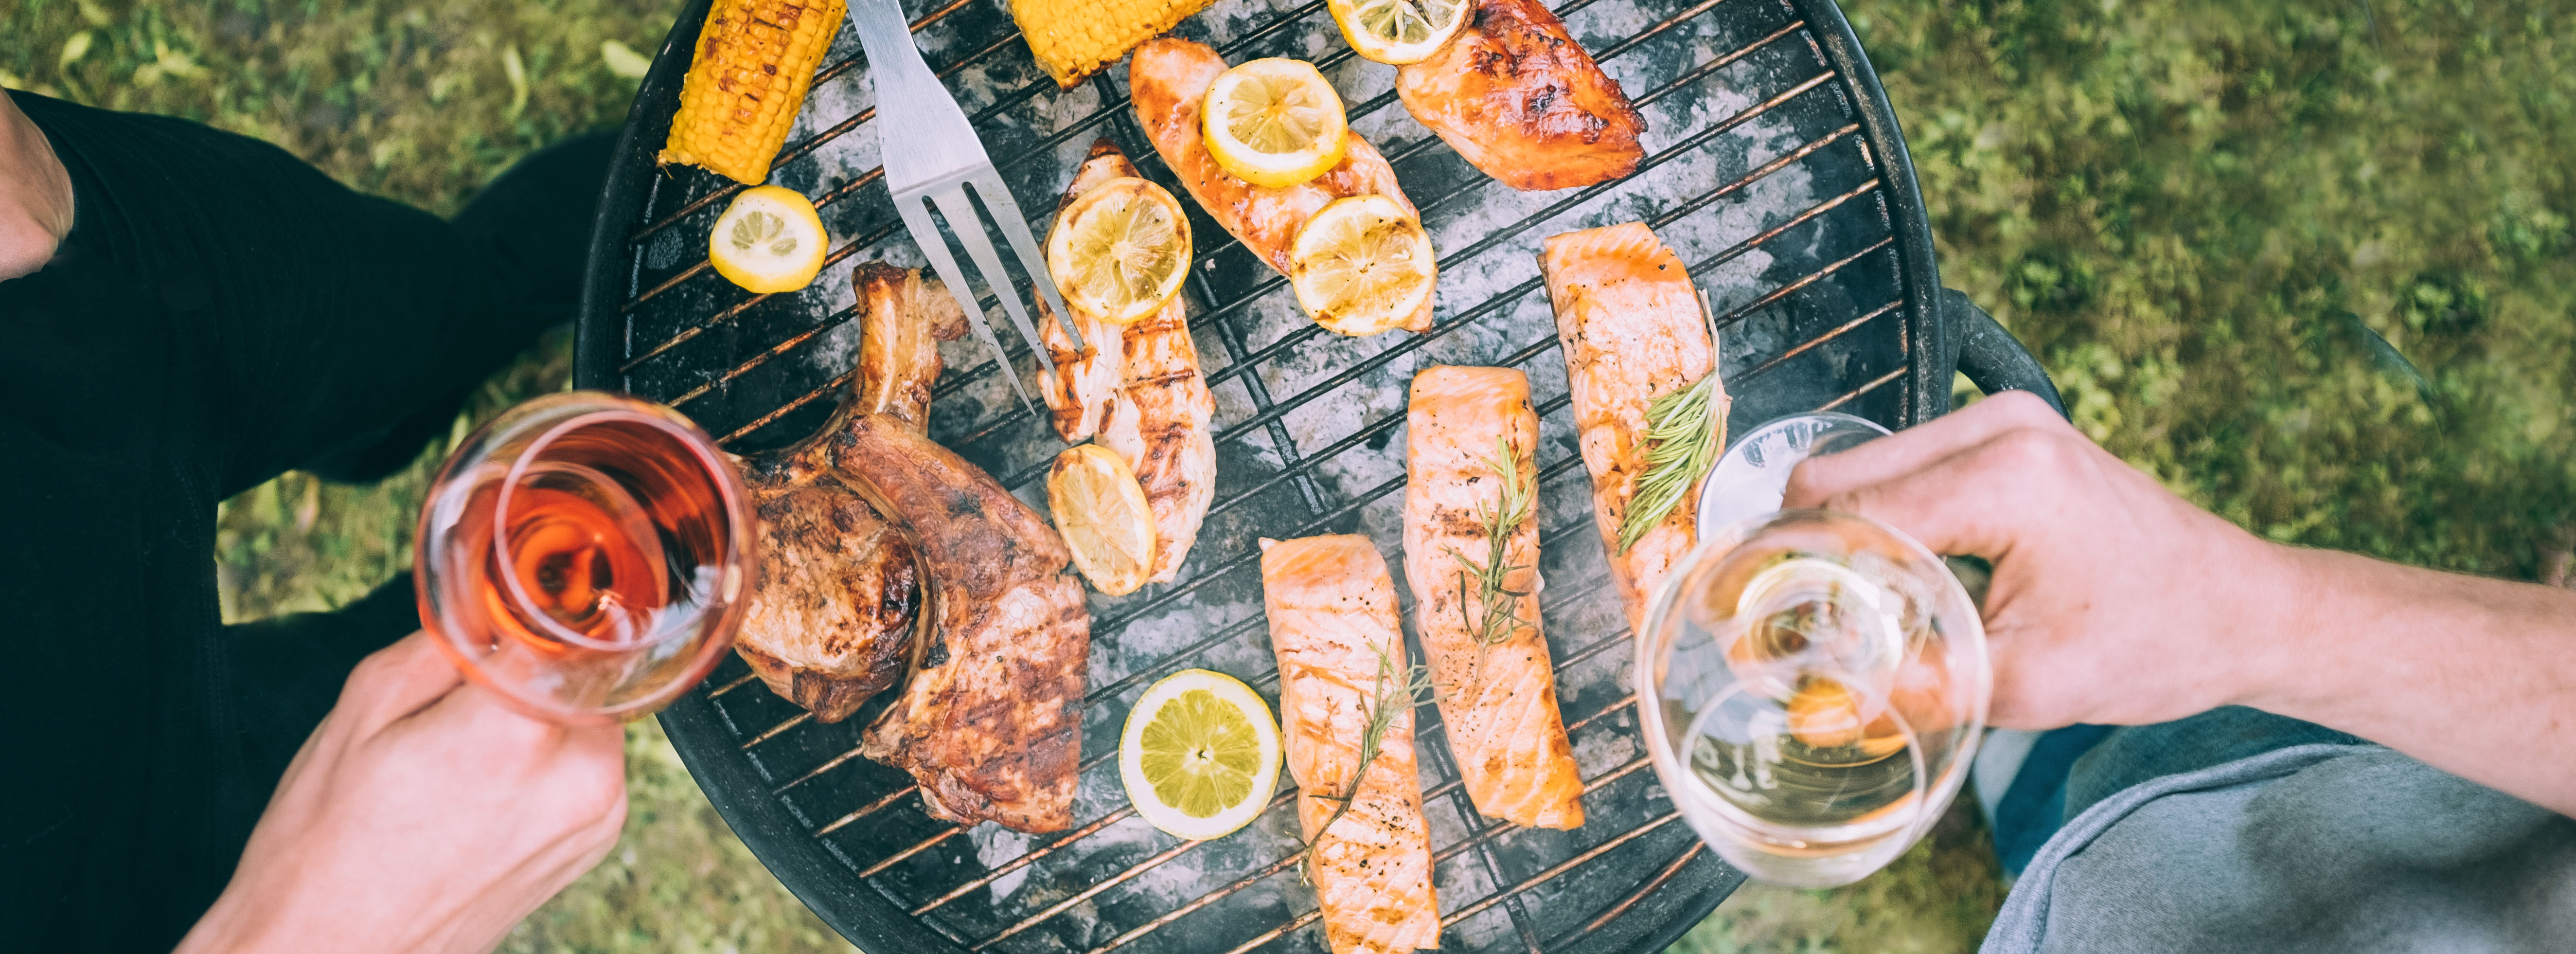 Bordeaux wines with barbecue food – why not?